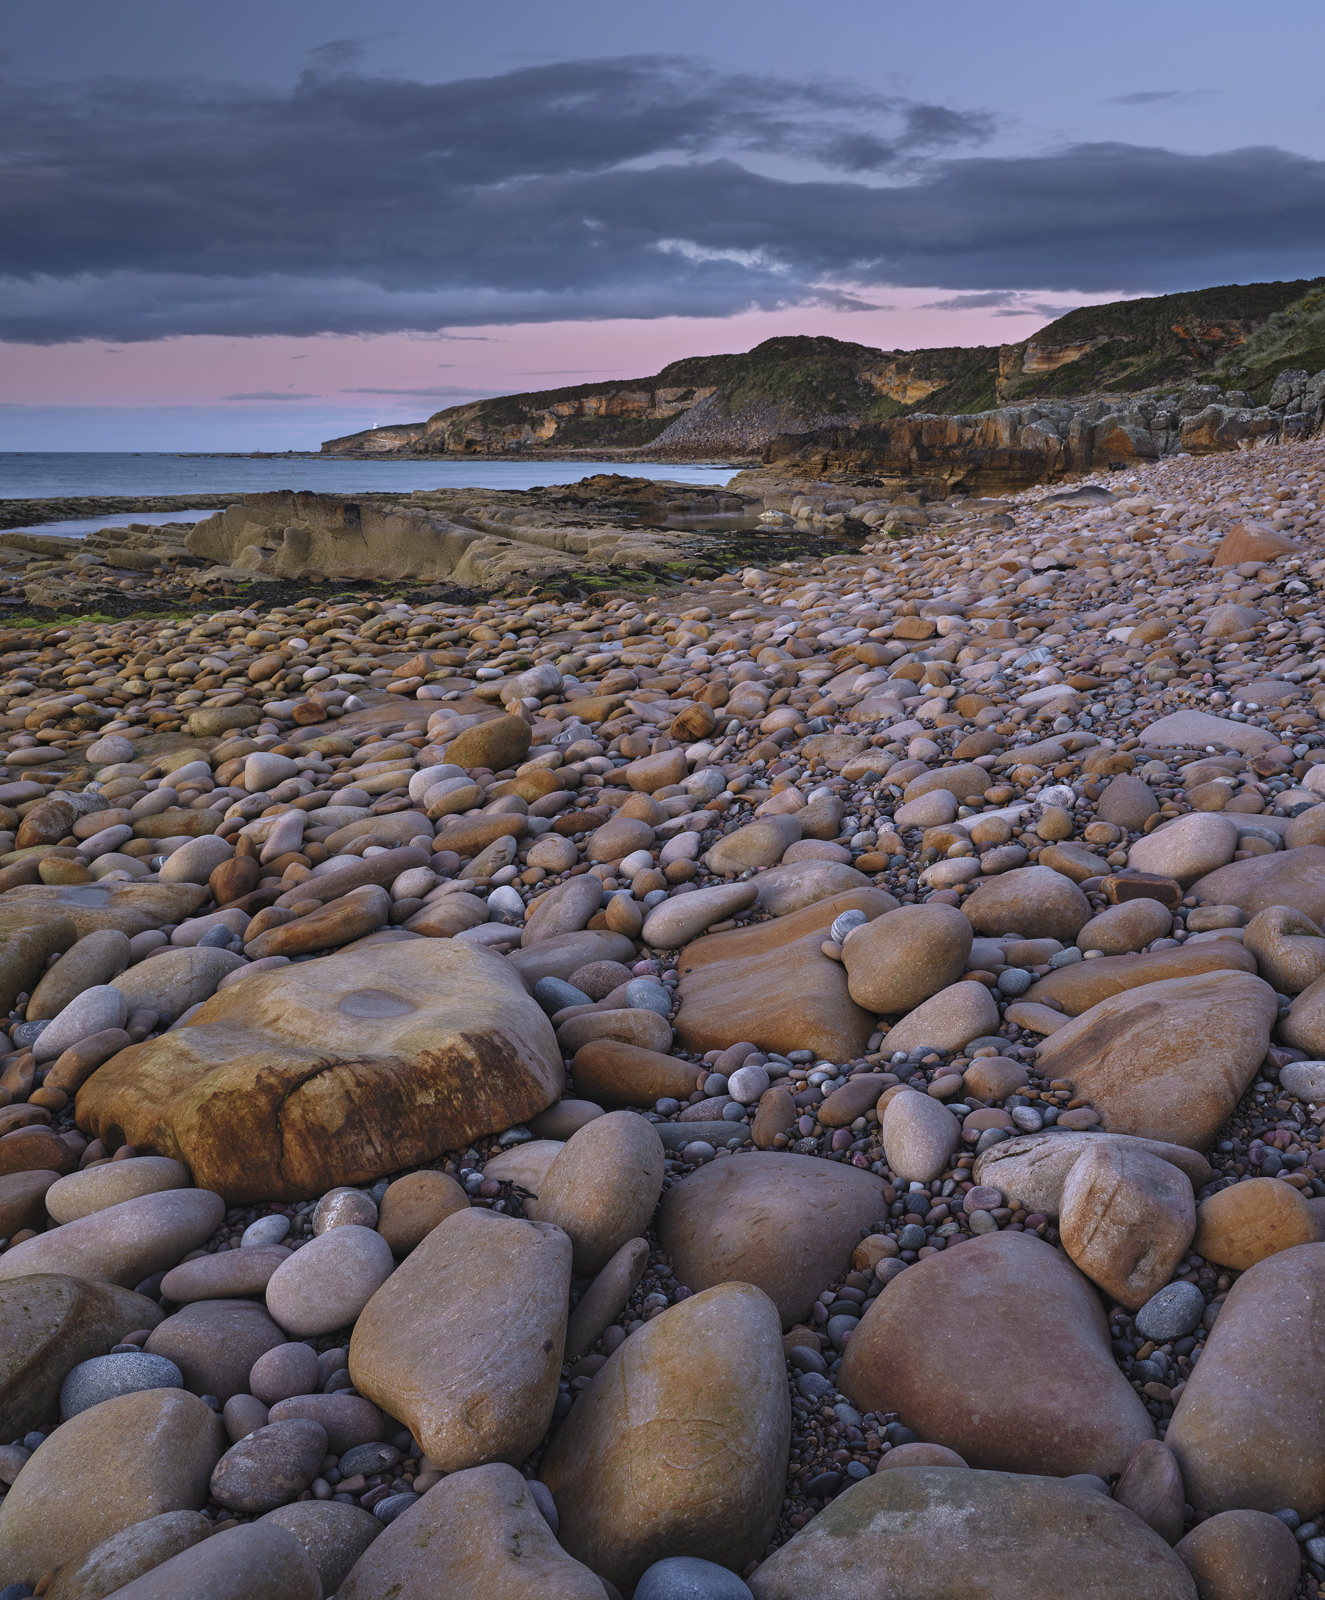 Clashach Cove Stones, Clashach Cove, Moray, Scotland, multi-coloured, stones, boulders, chatter, tide, bedrock, sandston, photo